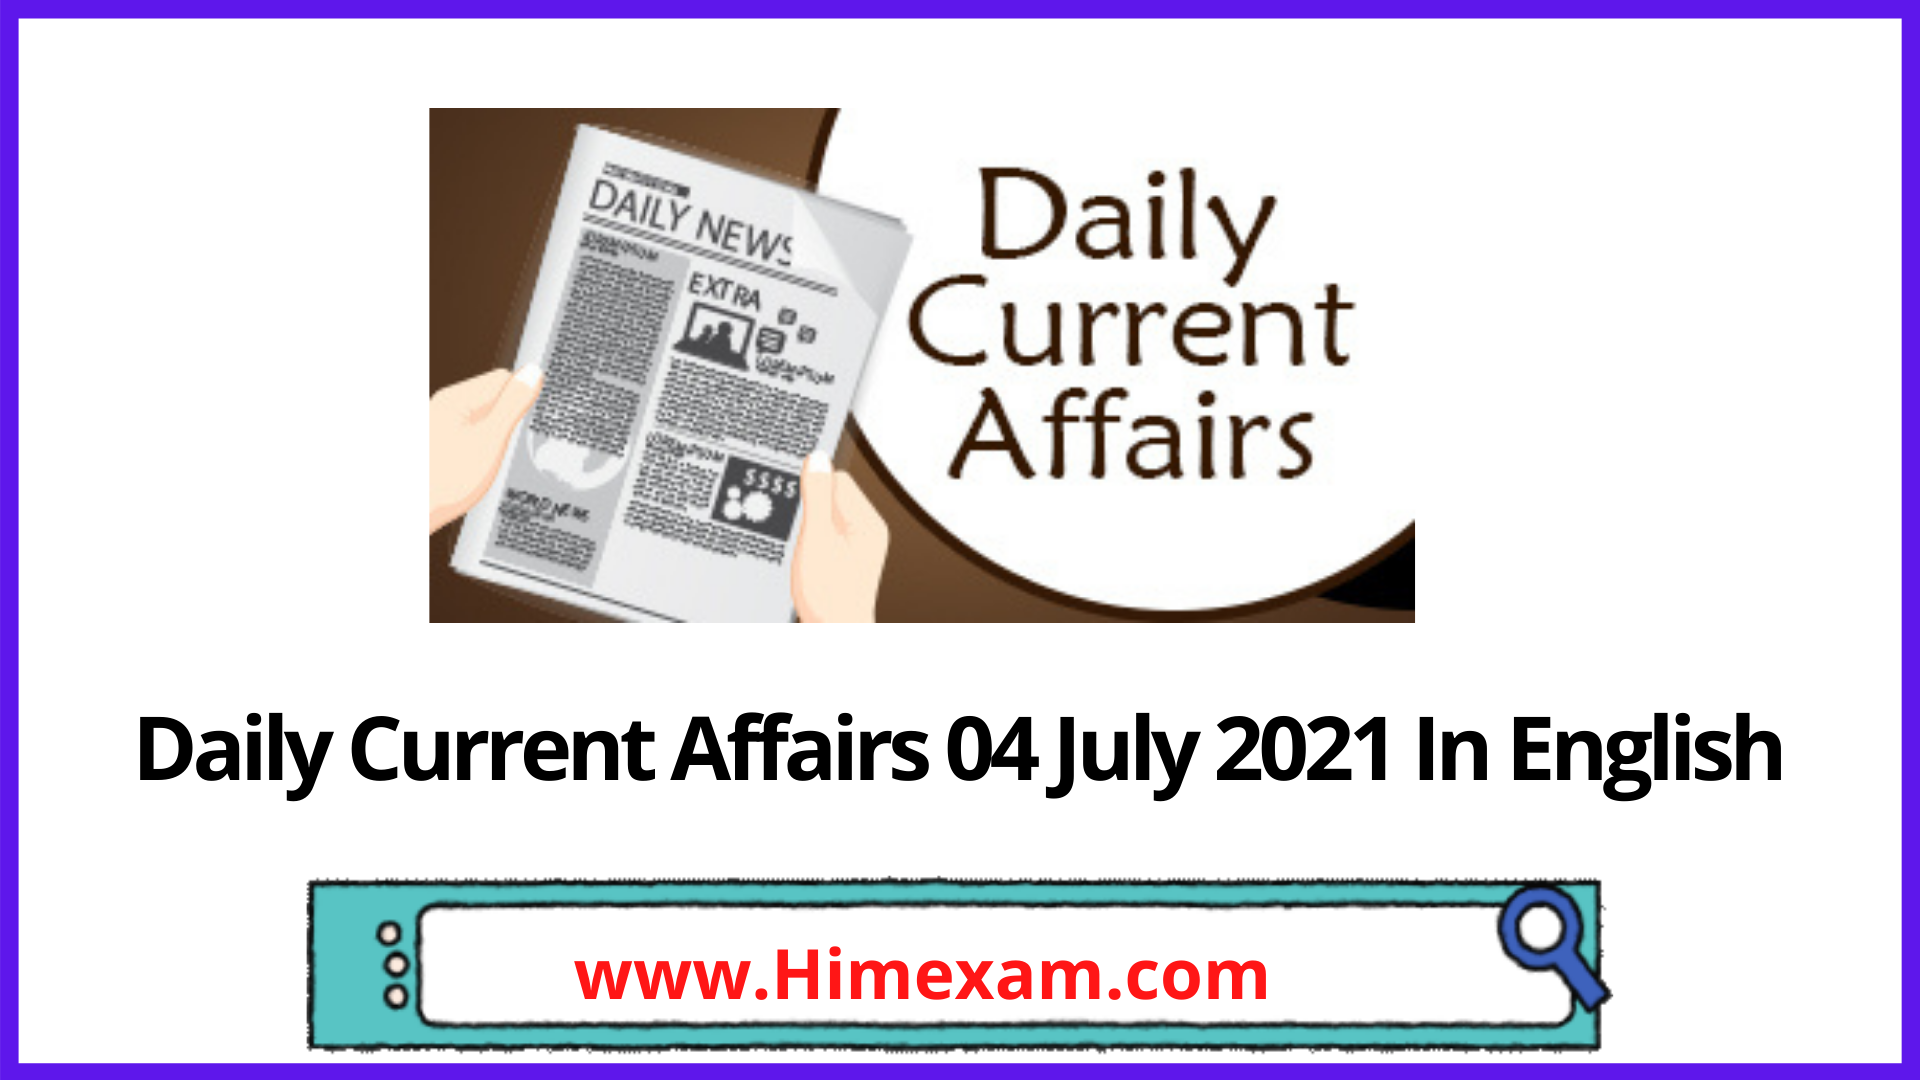 Daily Current Affairs 04 July 2021 In English